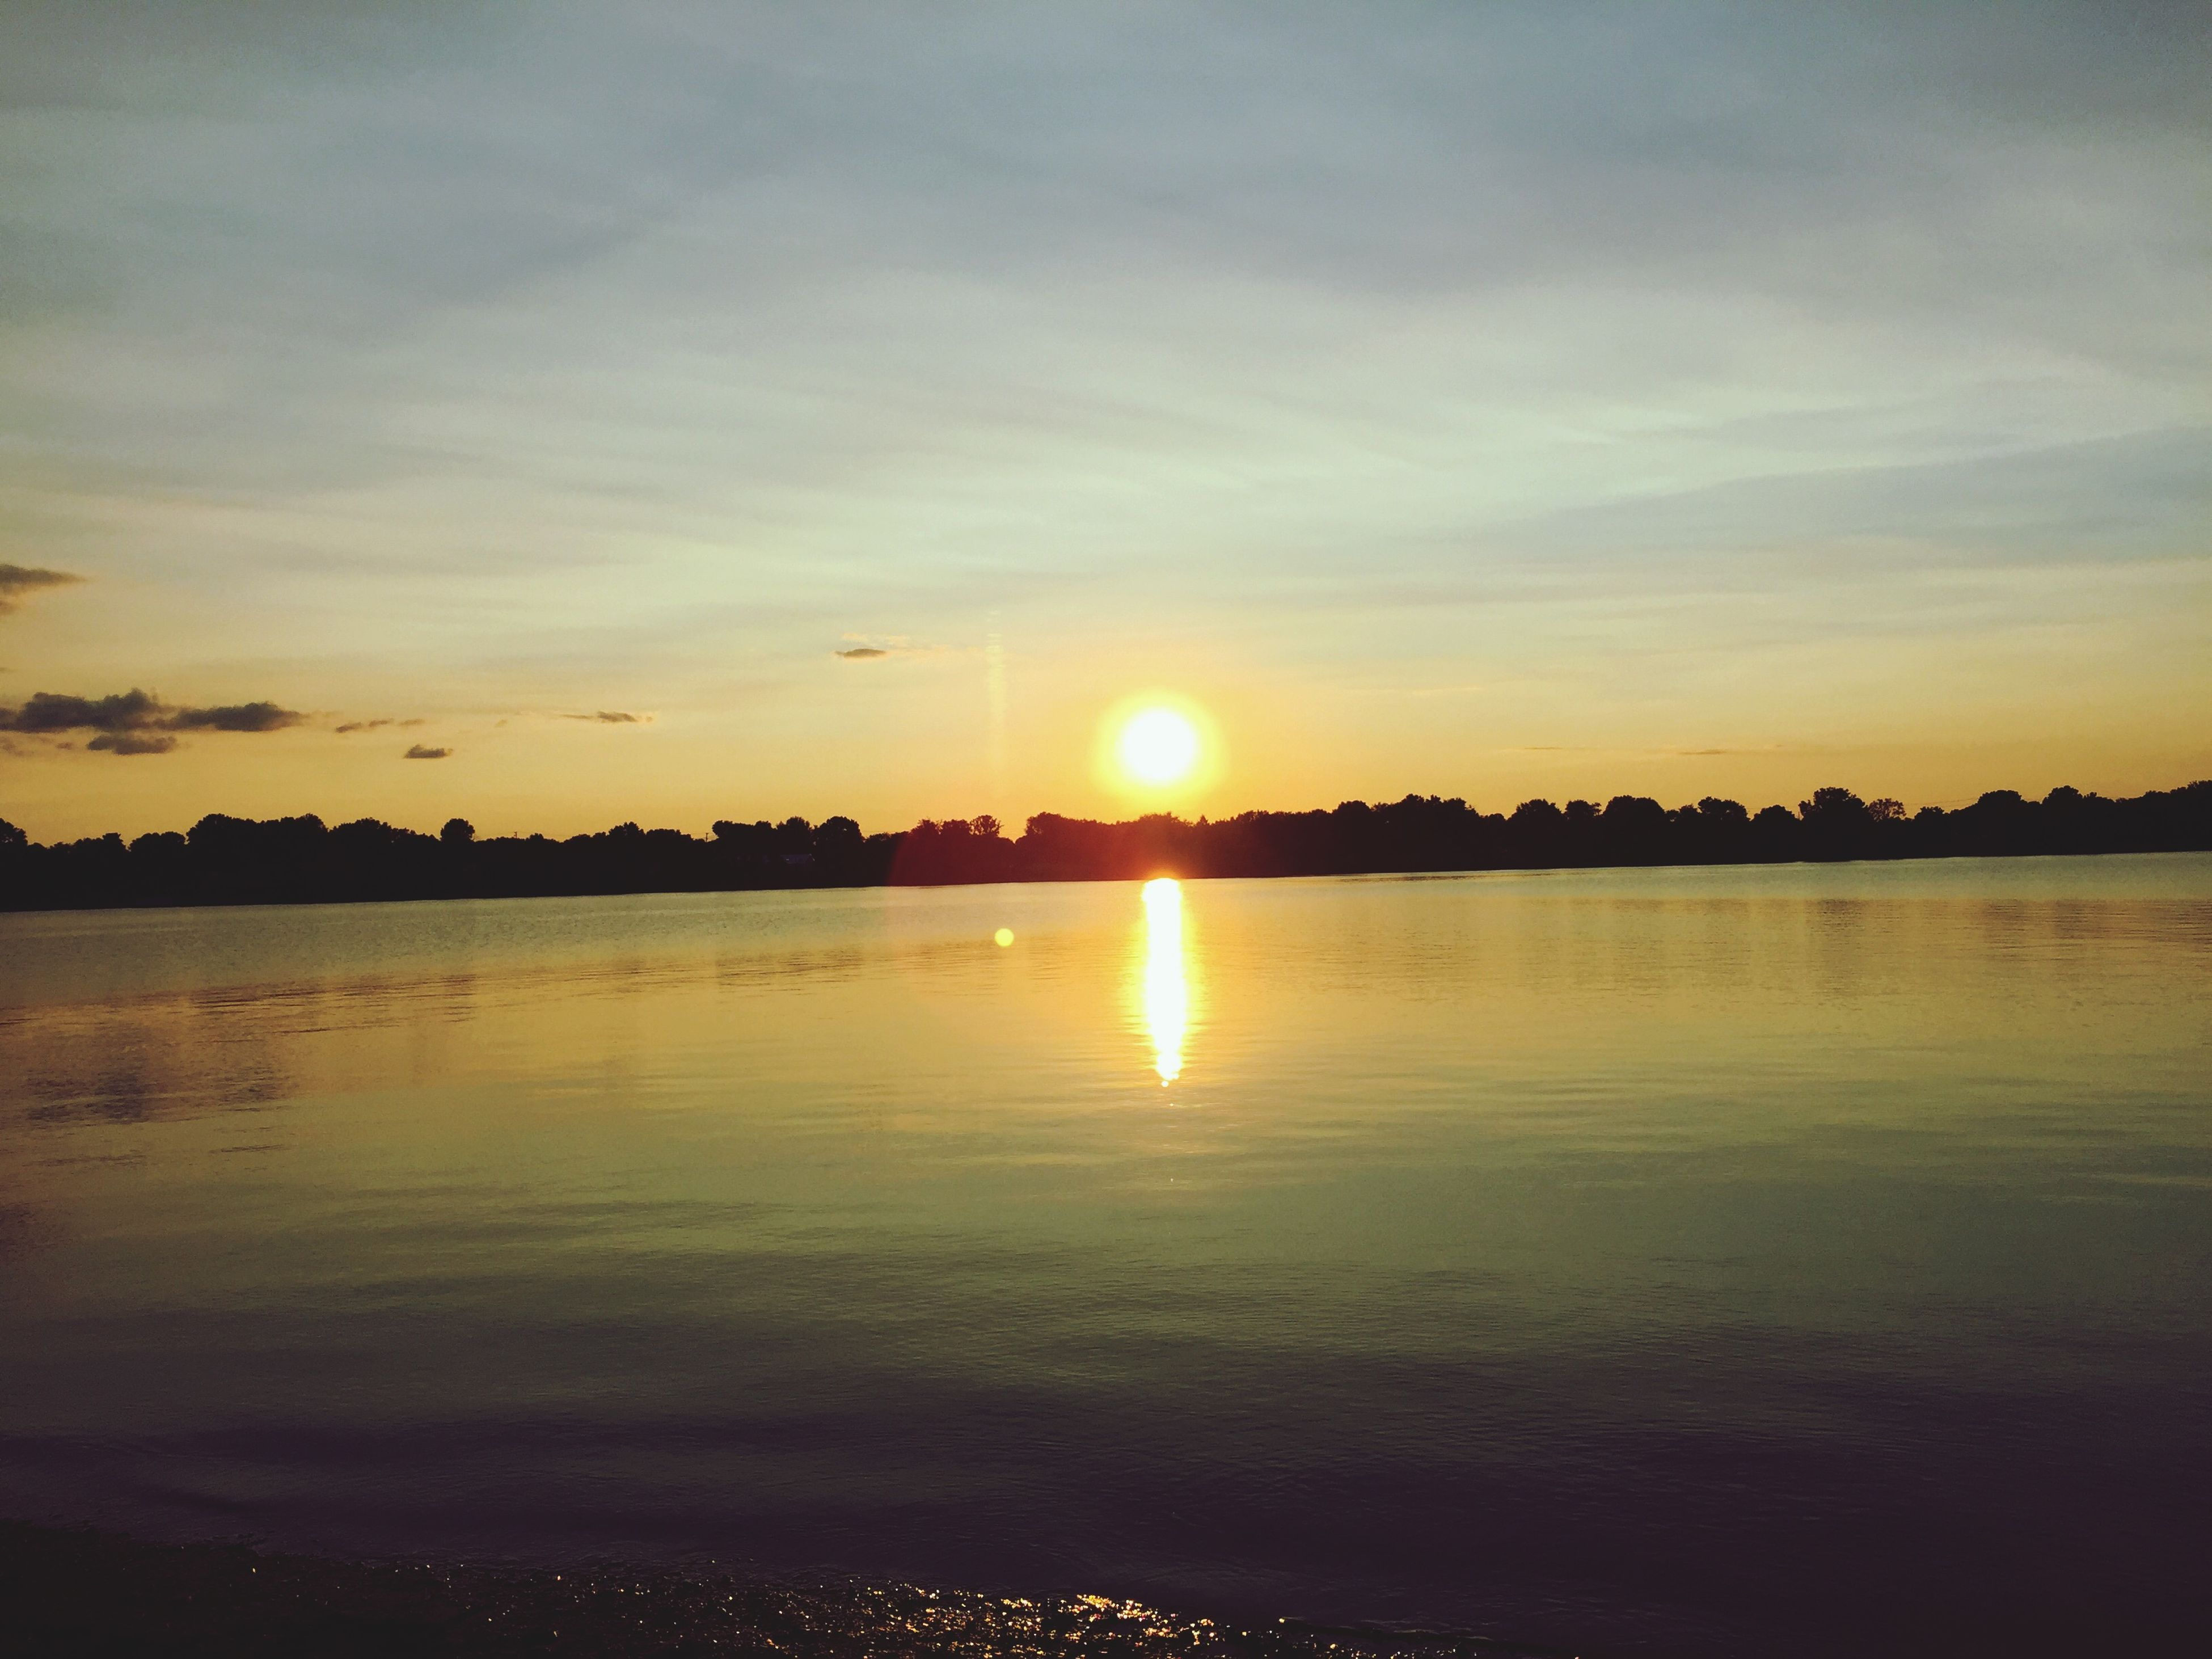 sunset, sun, water, scenics, tranquil scene, reflection, beauty in nature, tranquility, orange color, sky, silhouette, idyllic, nature, sunlight, waterfront, lake, sea, cloud - sky, outdoors, sunbeam